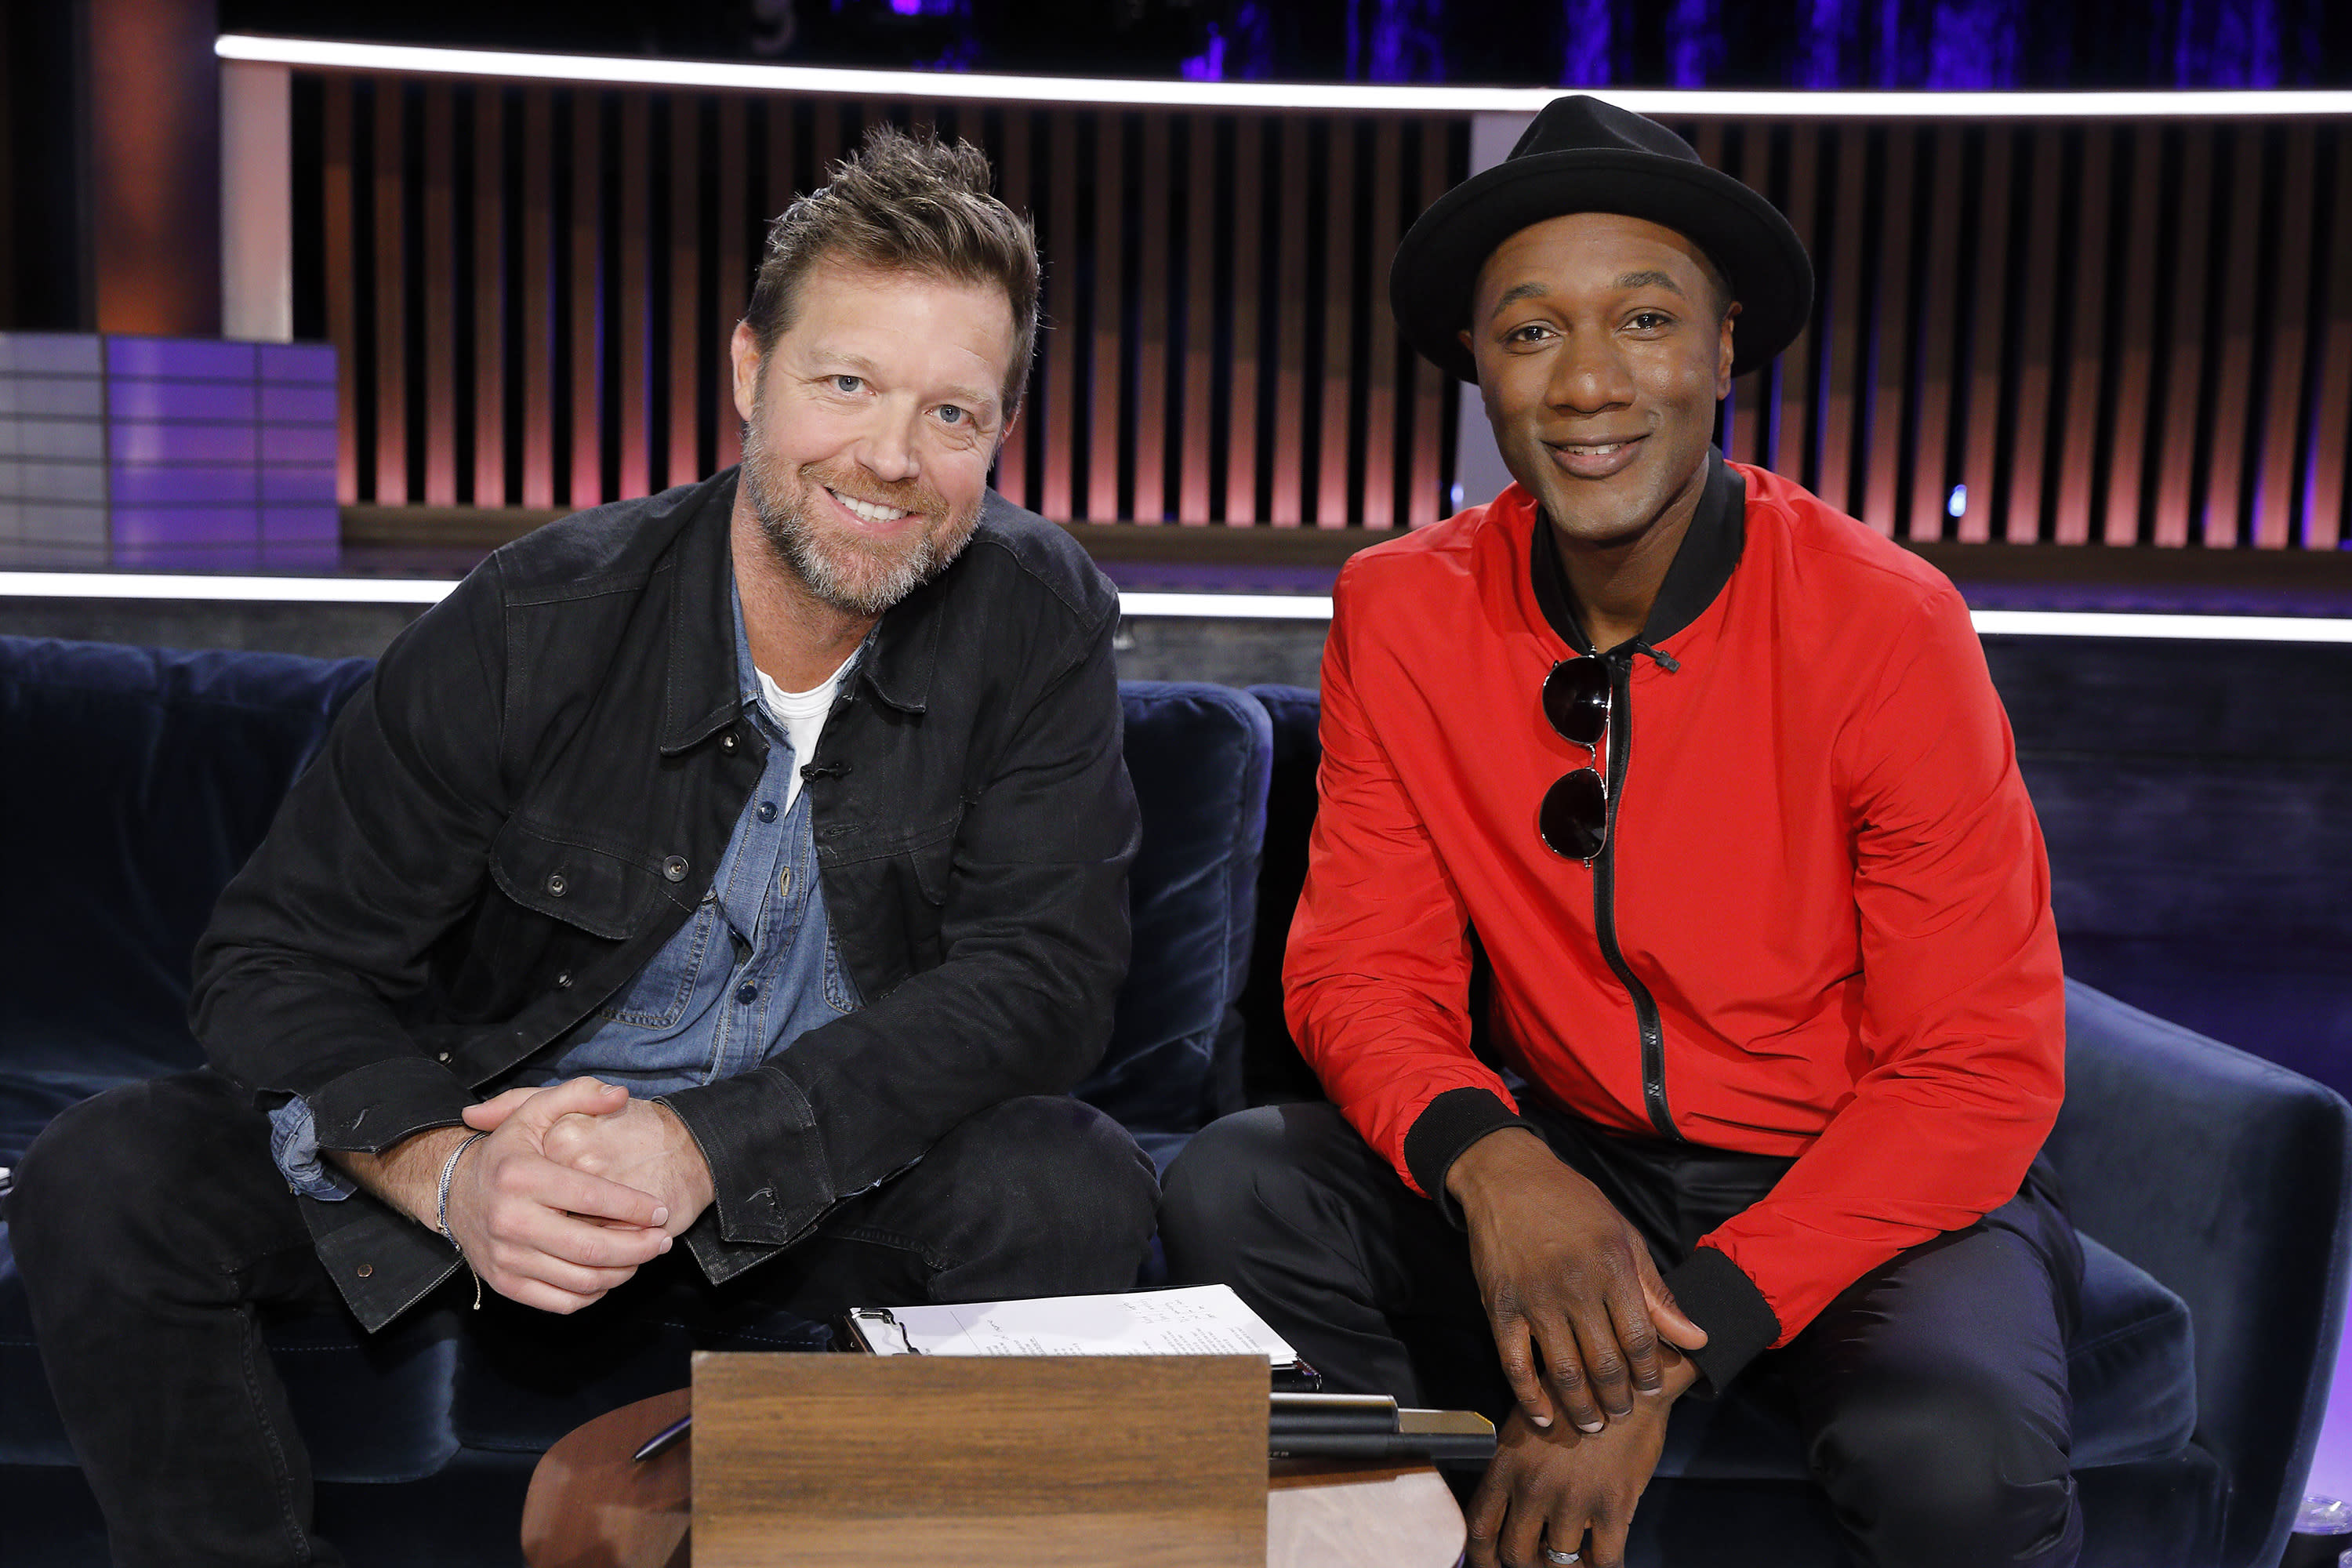 David Leitch, director of 'Fast & Furious Presents: Hobbs & Shaw,' and Aloe Blacc on 'Songland.' (Photo: Trae Patton/NBC/NBCU Photo Bank)